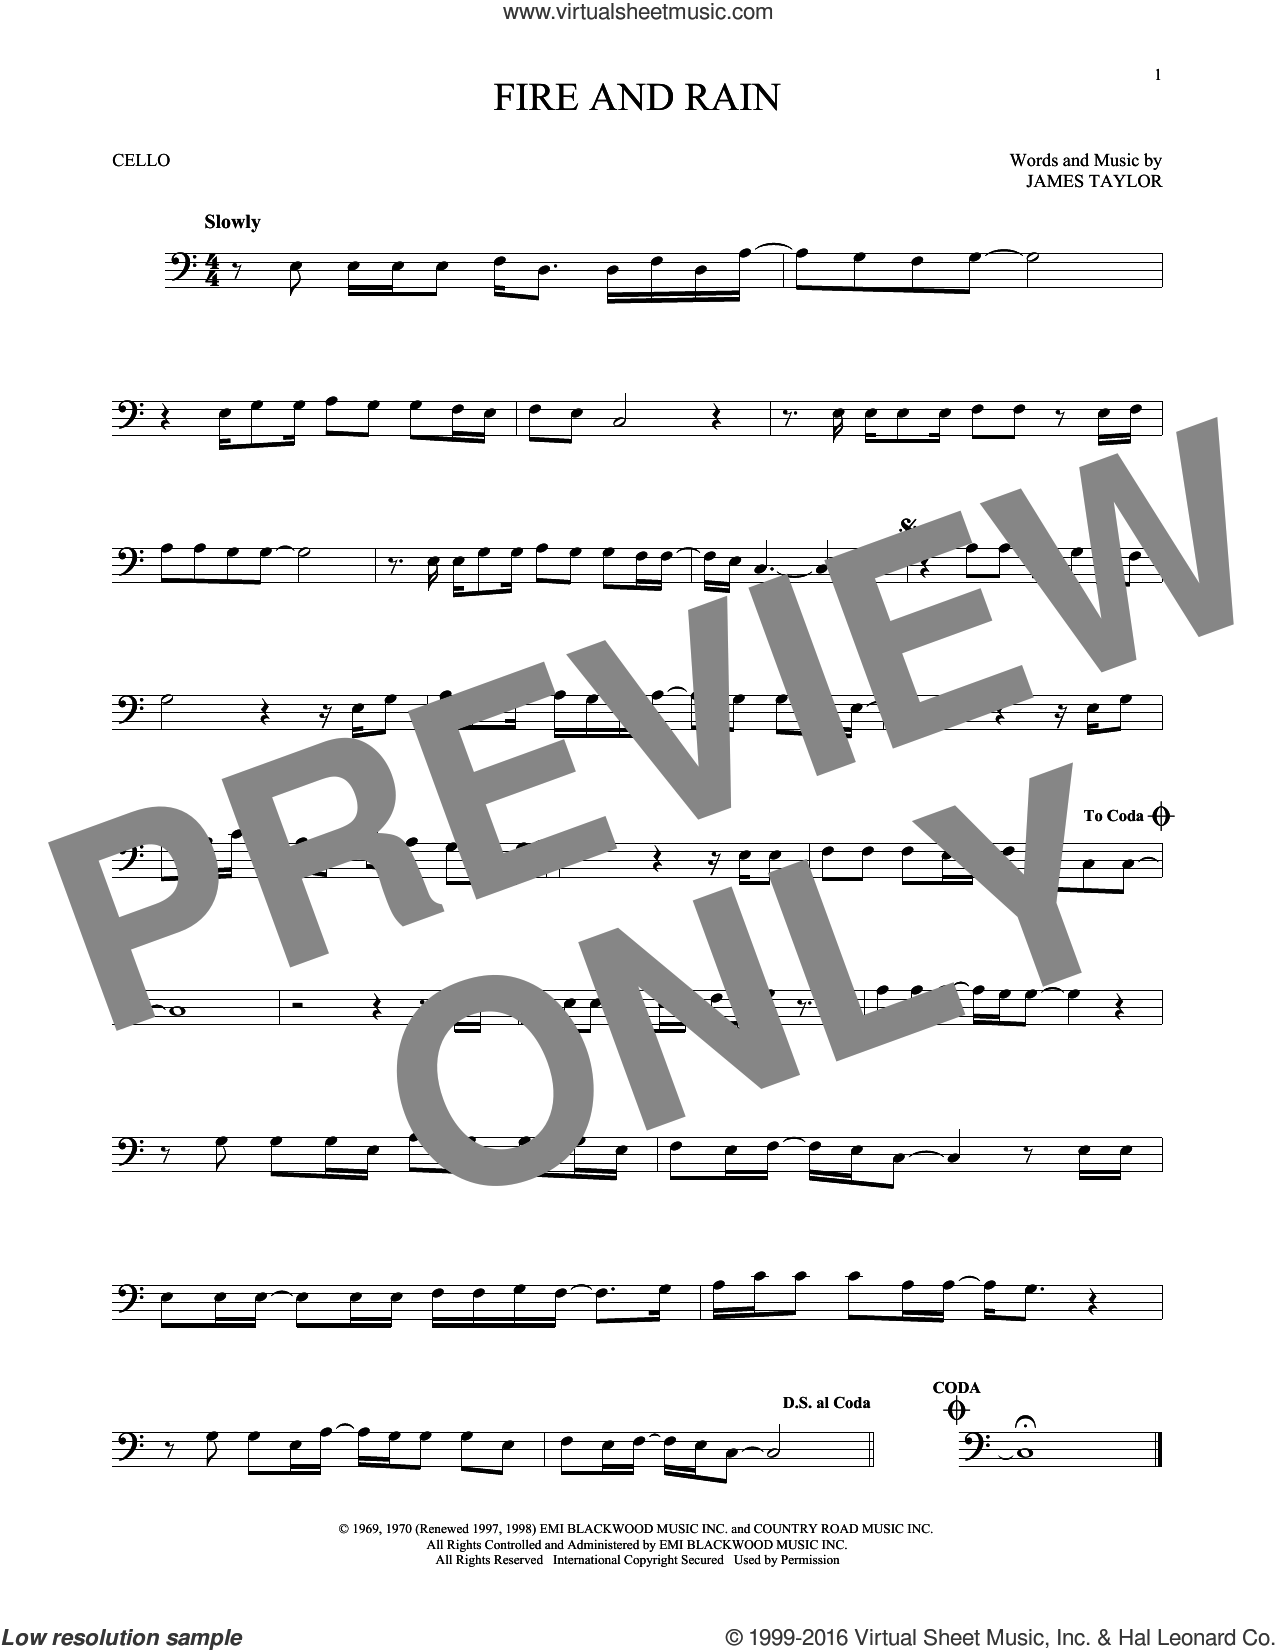 Fire And Rain sheet music for cello solo by James Taylor, intermediate skill level